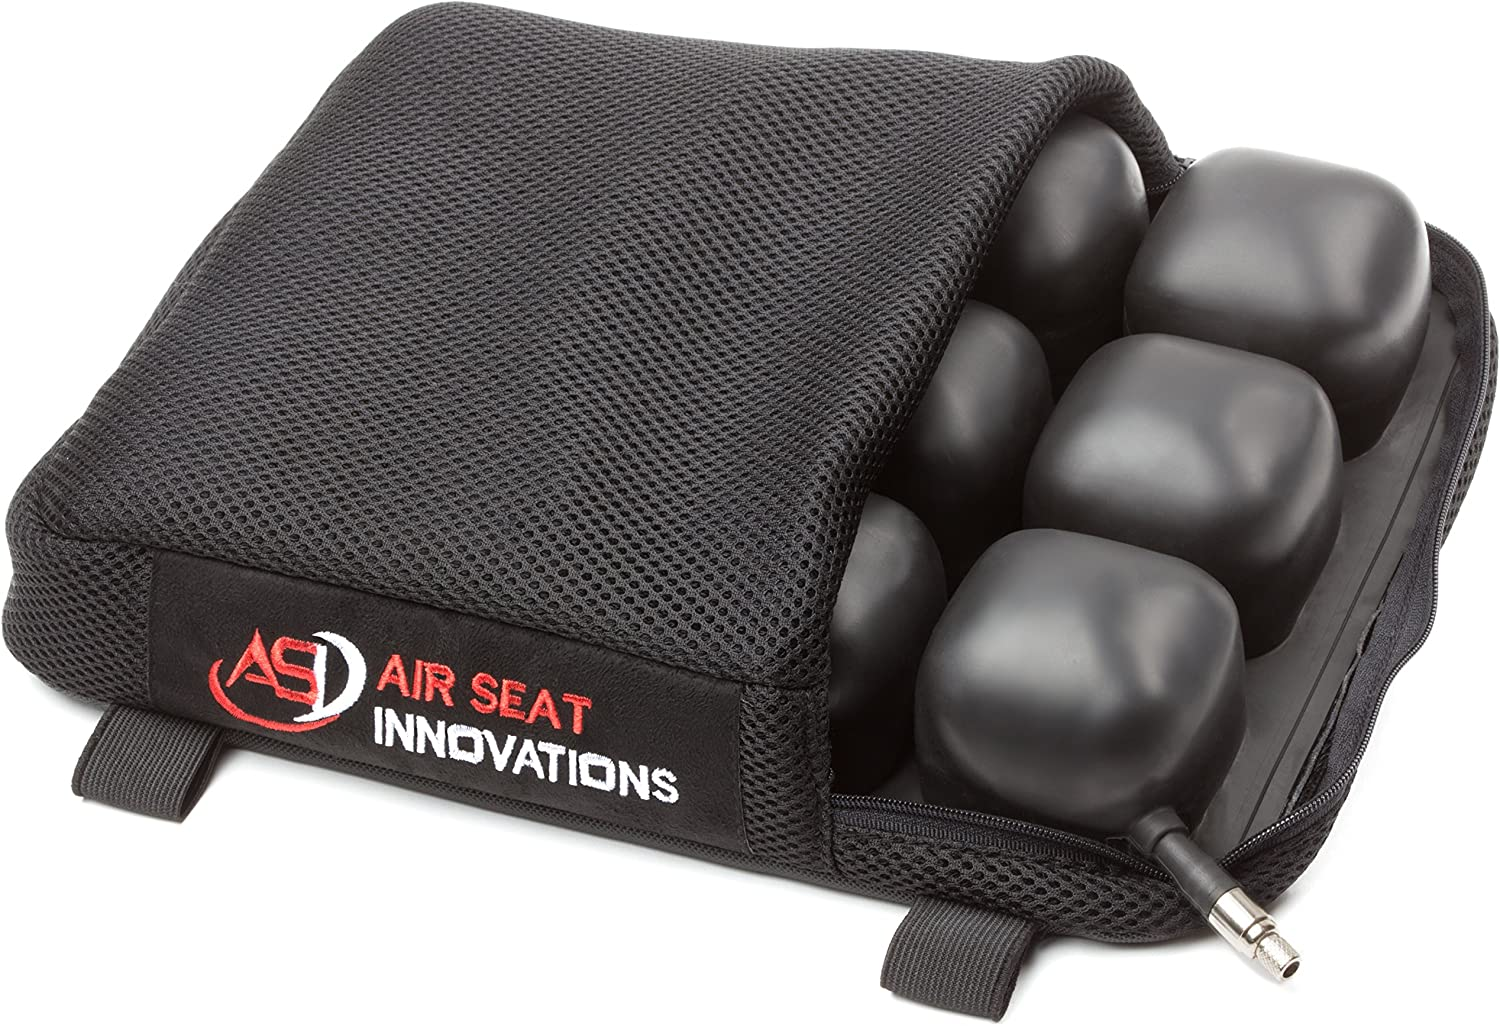 "ASI - Motorcycle Air Seat Cushion, Rear or Small Seat Size, Extends Ride time and Increases Circulation, Reduces Vibration, 12"" X 9.5"" x 2"""